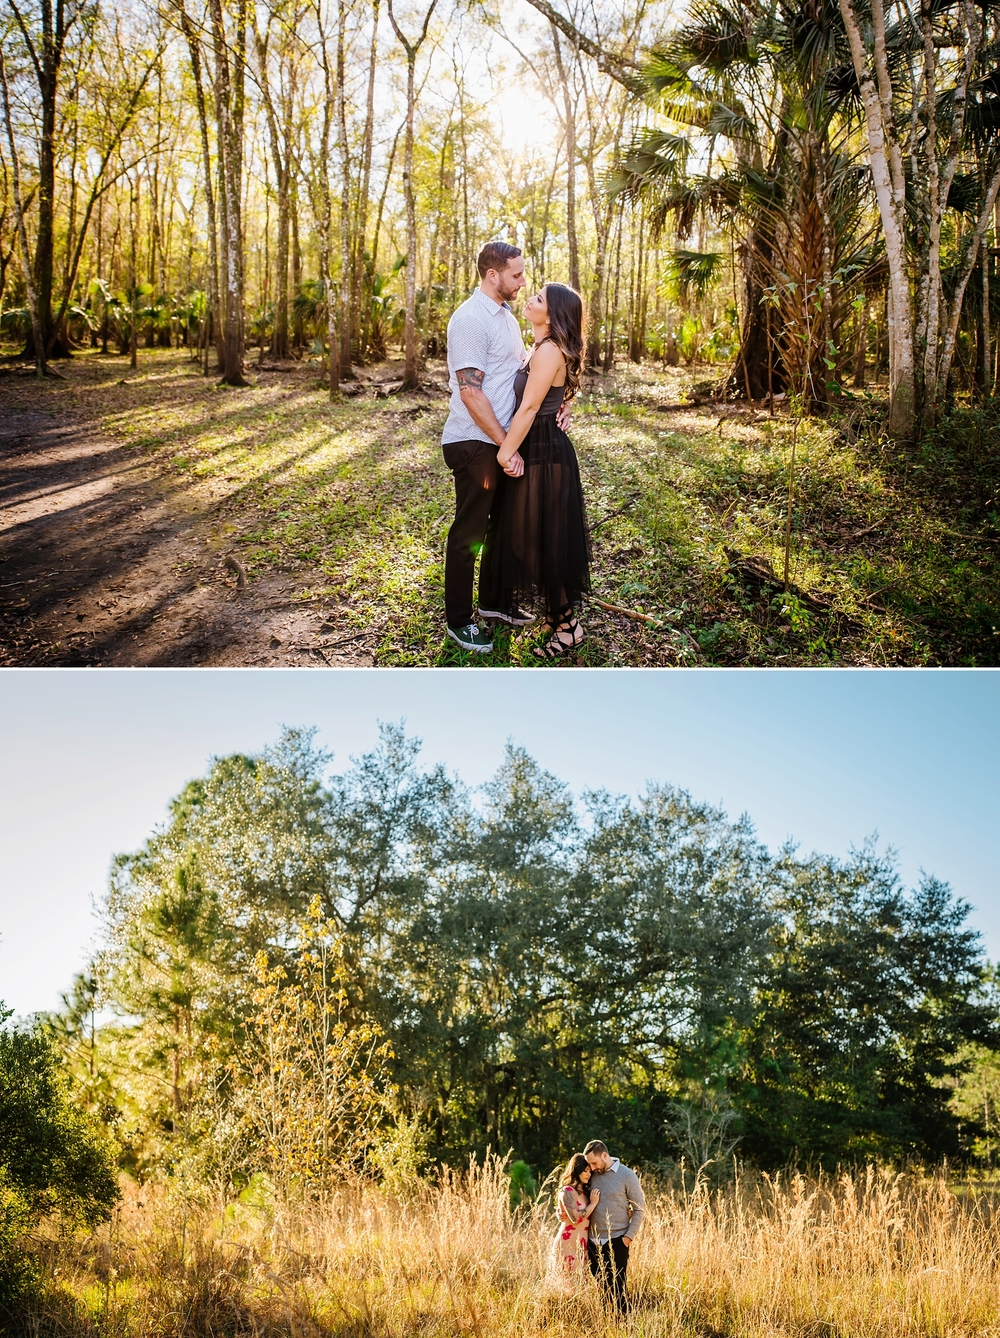 stylish-hip-engagement-session-tampa-ashlee-hamon_0007.jpg